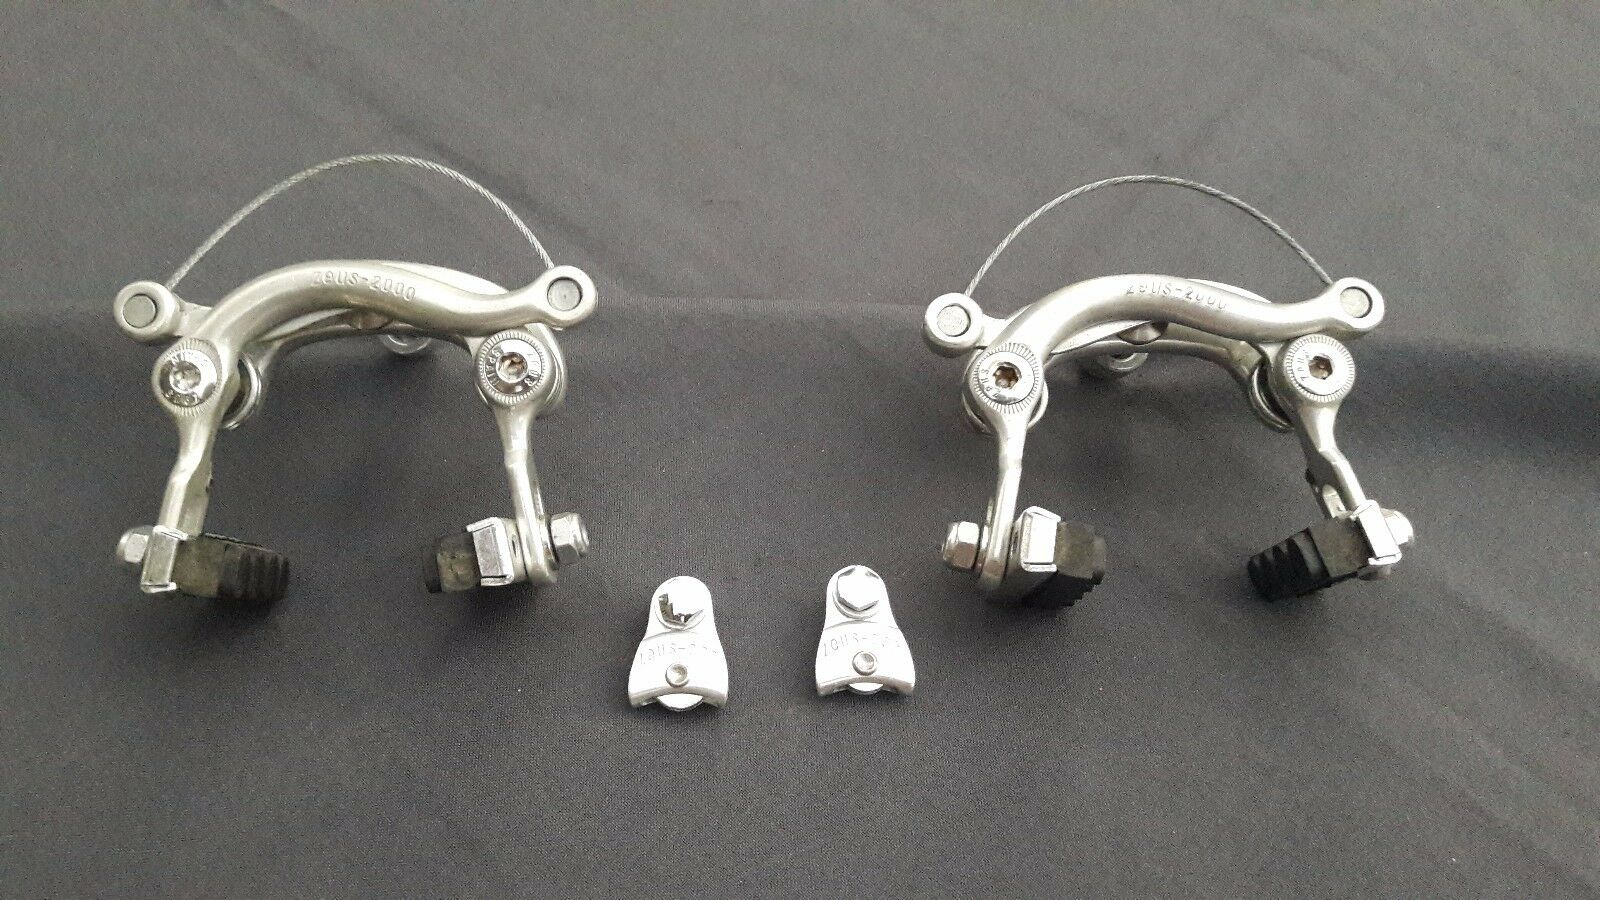 Zeus 2000 - Caliper Set - Bike - Front and  rear - Traditional nut style Vintage  in stock